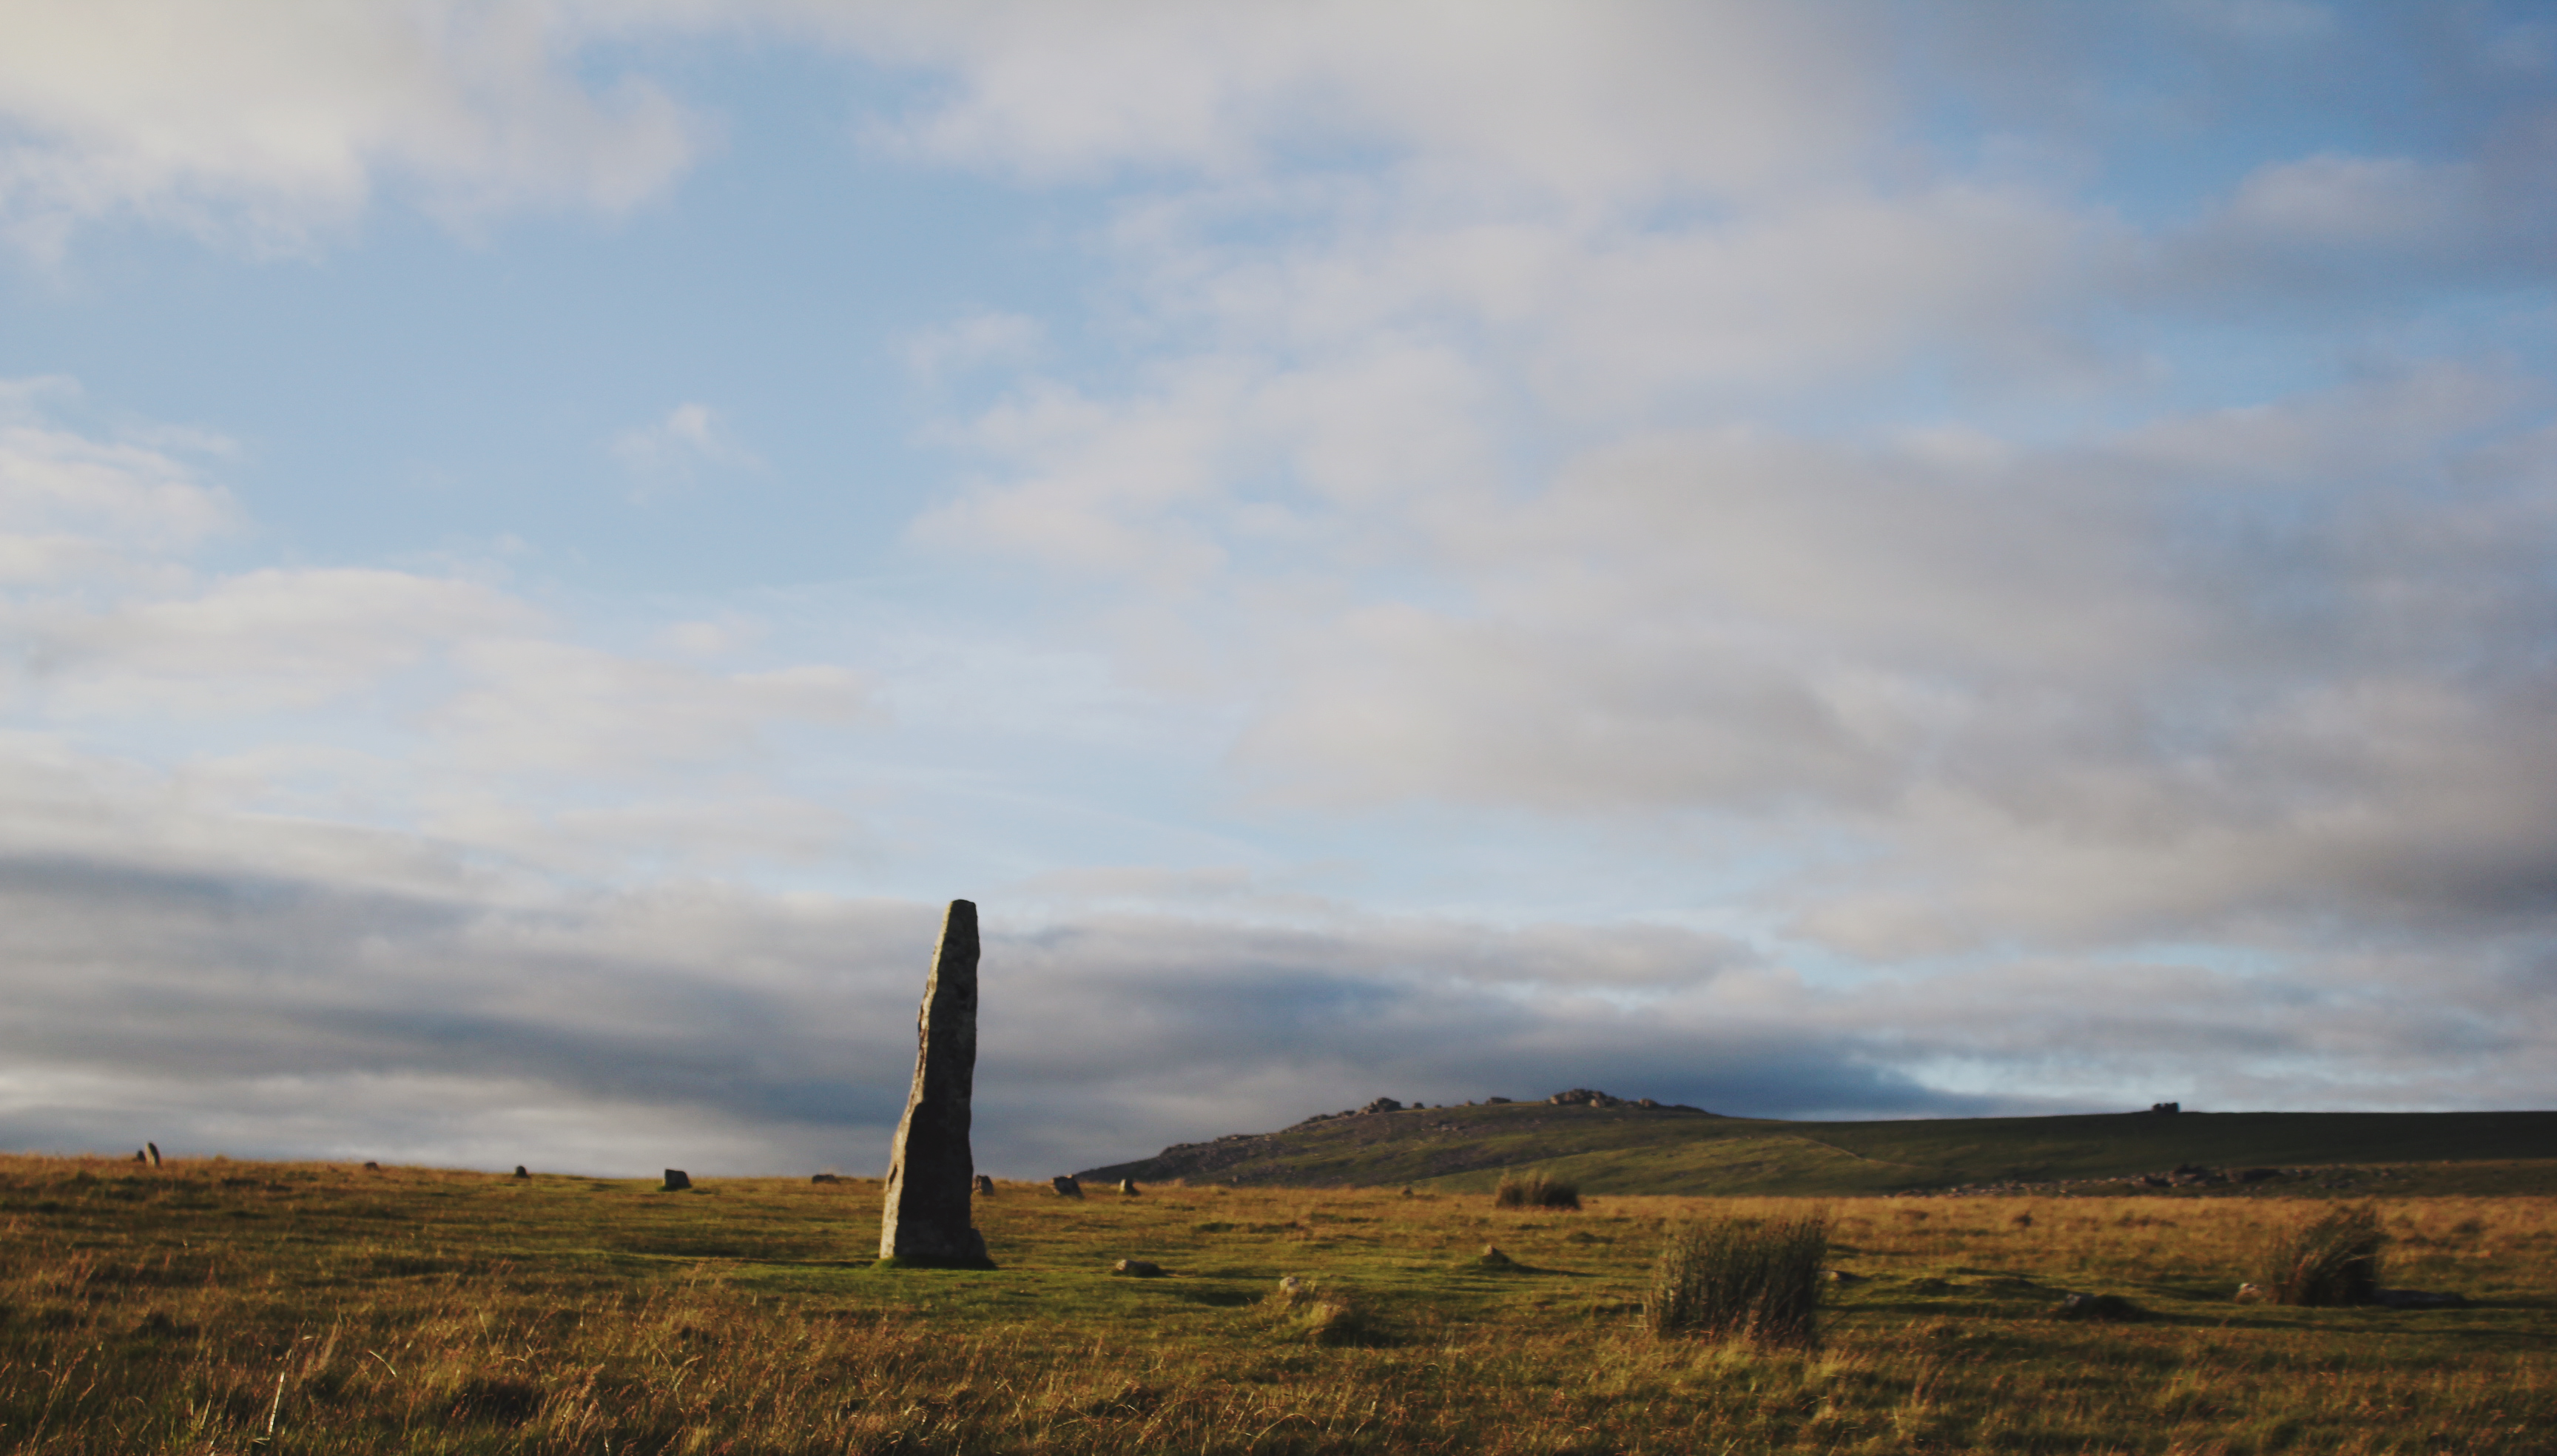 The Menhir, or Standing Stone, at Merrivale Stone Circle